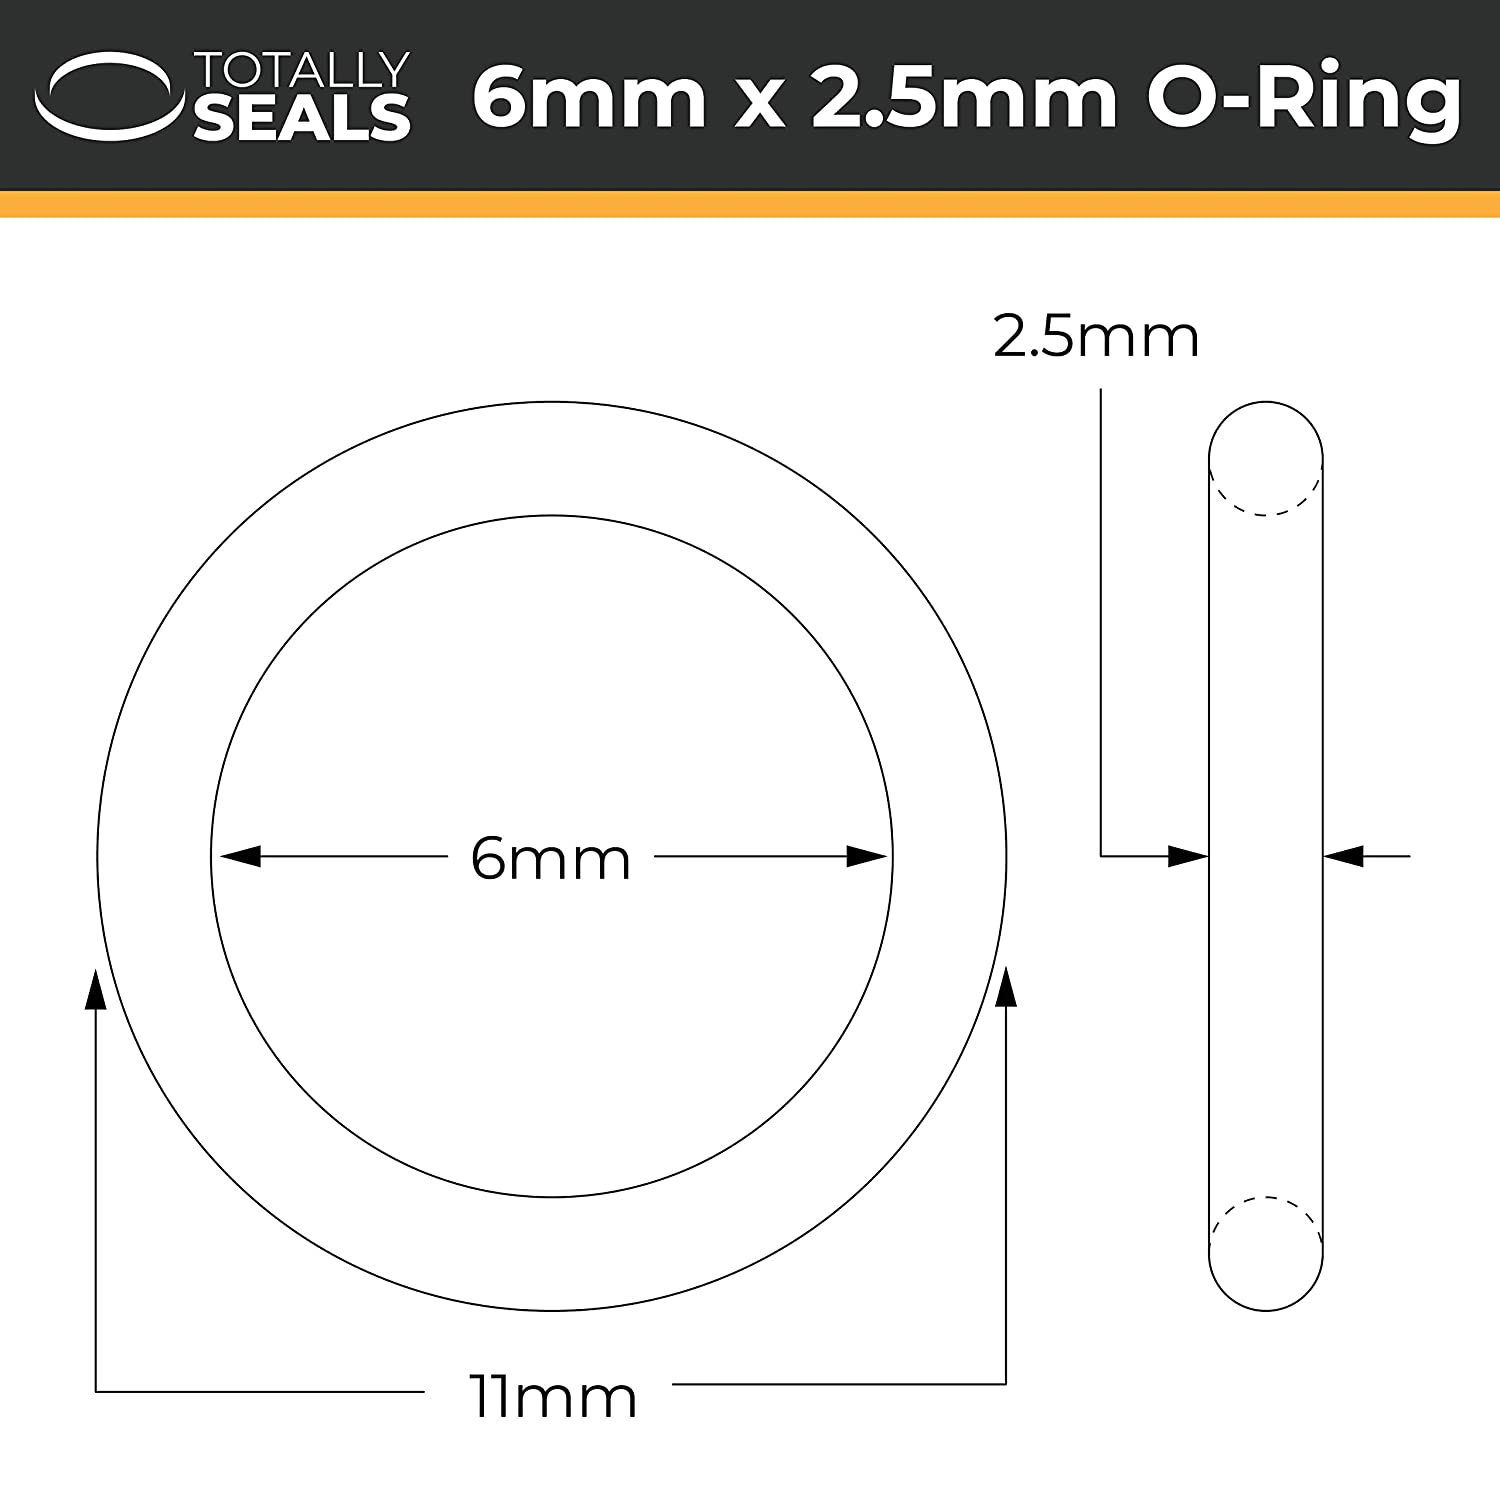 Nitrile Rubber O-Rings 70A Shore Hardness 11mm OD 6mm x 2.5mm Pack of 20